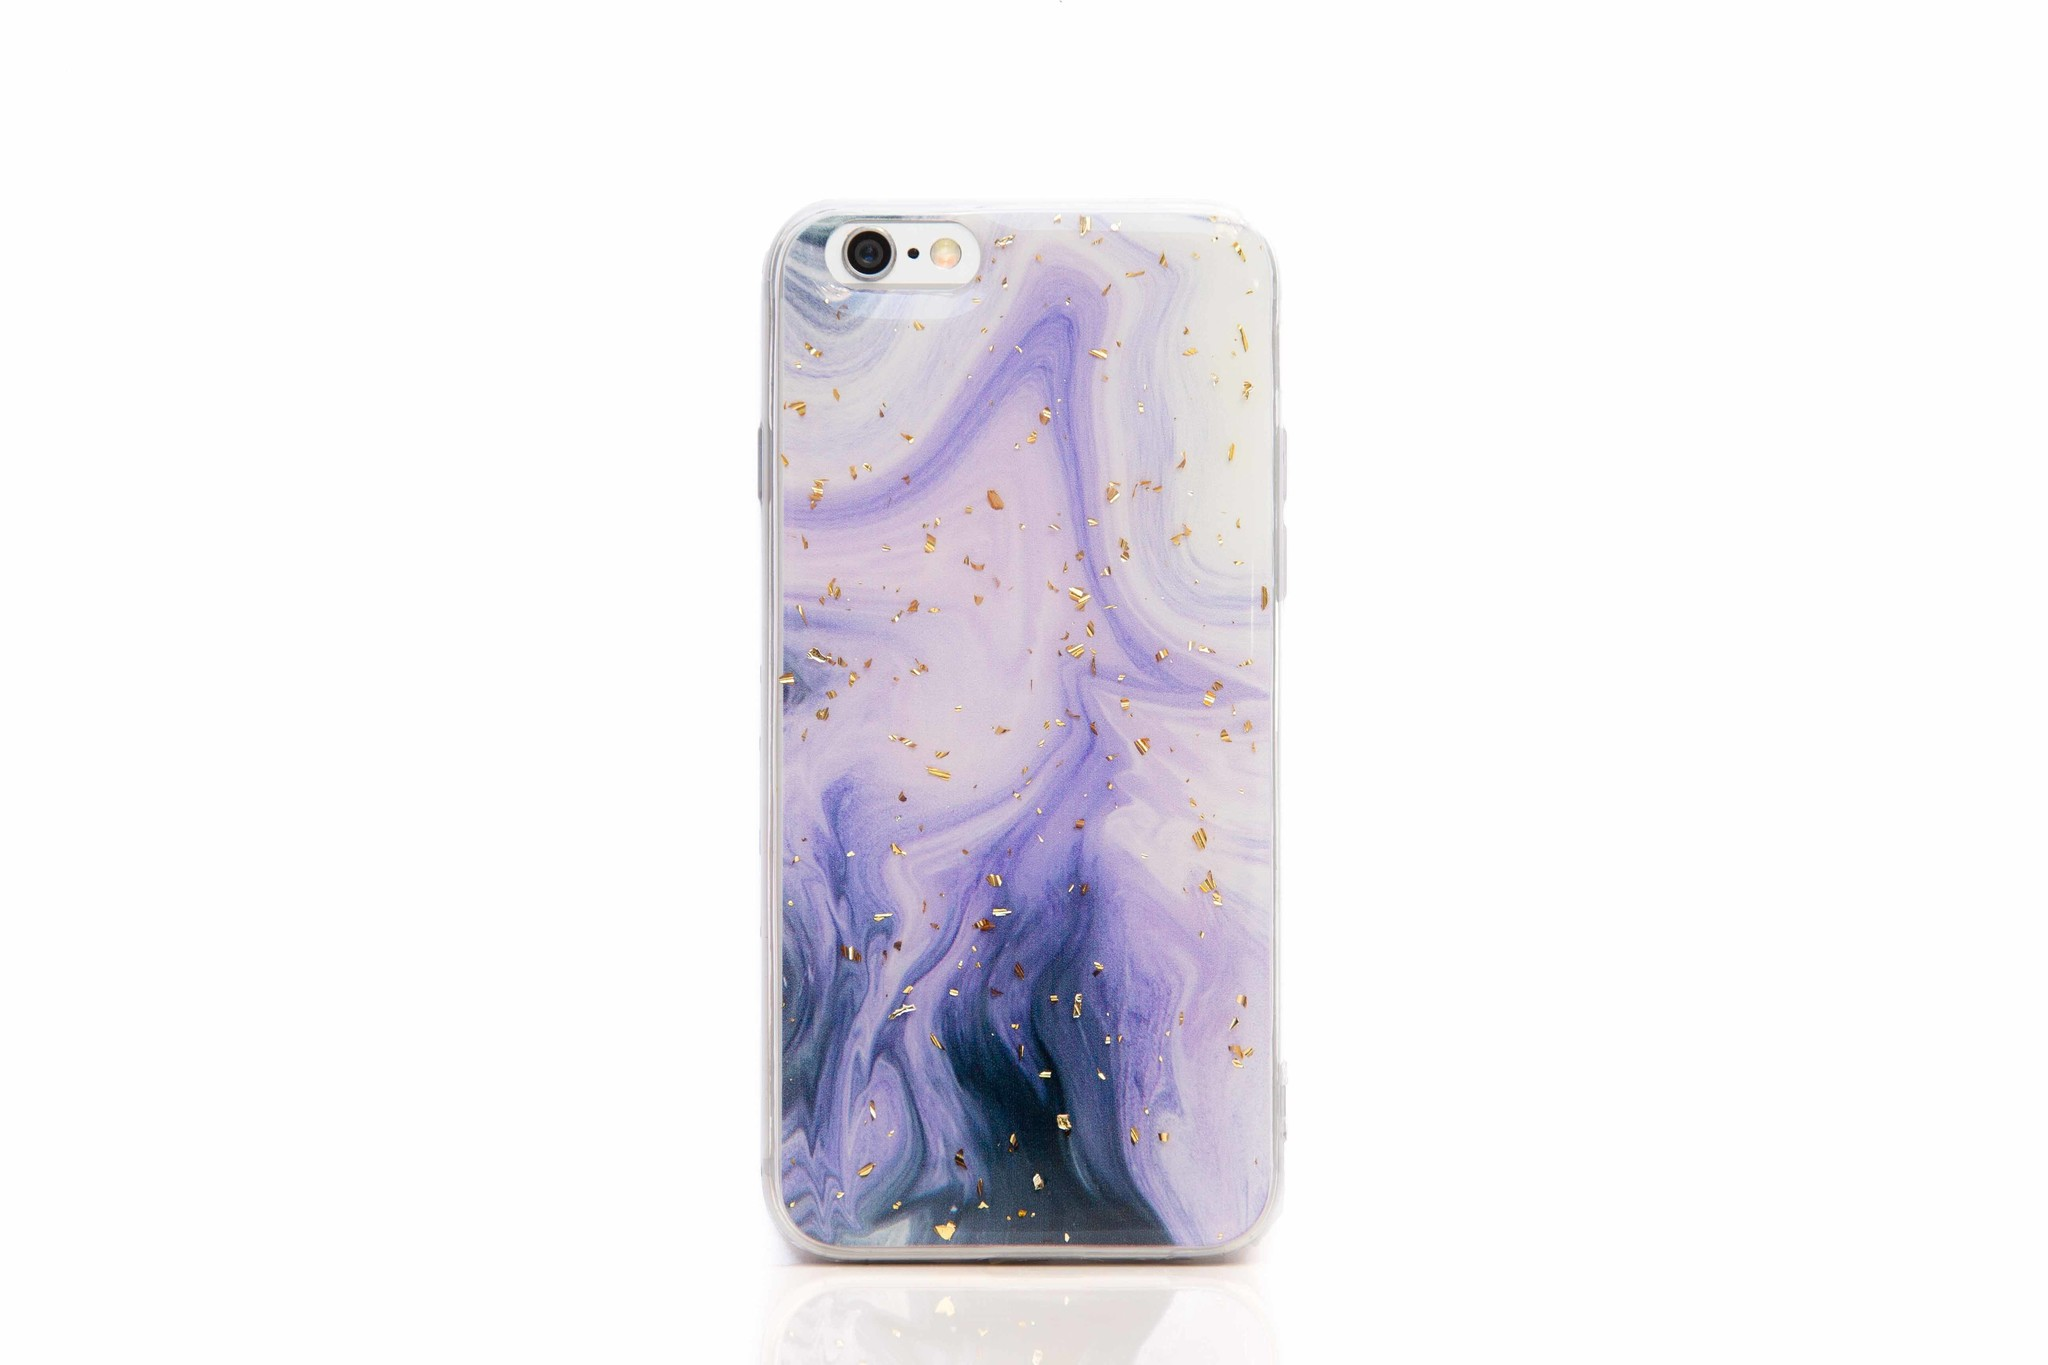 Smartphonehoesje iPhone 7 / 8 | Marmerlook (glitter) | Paars / wit